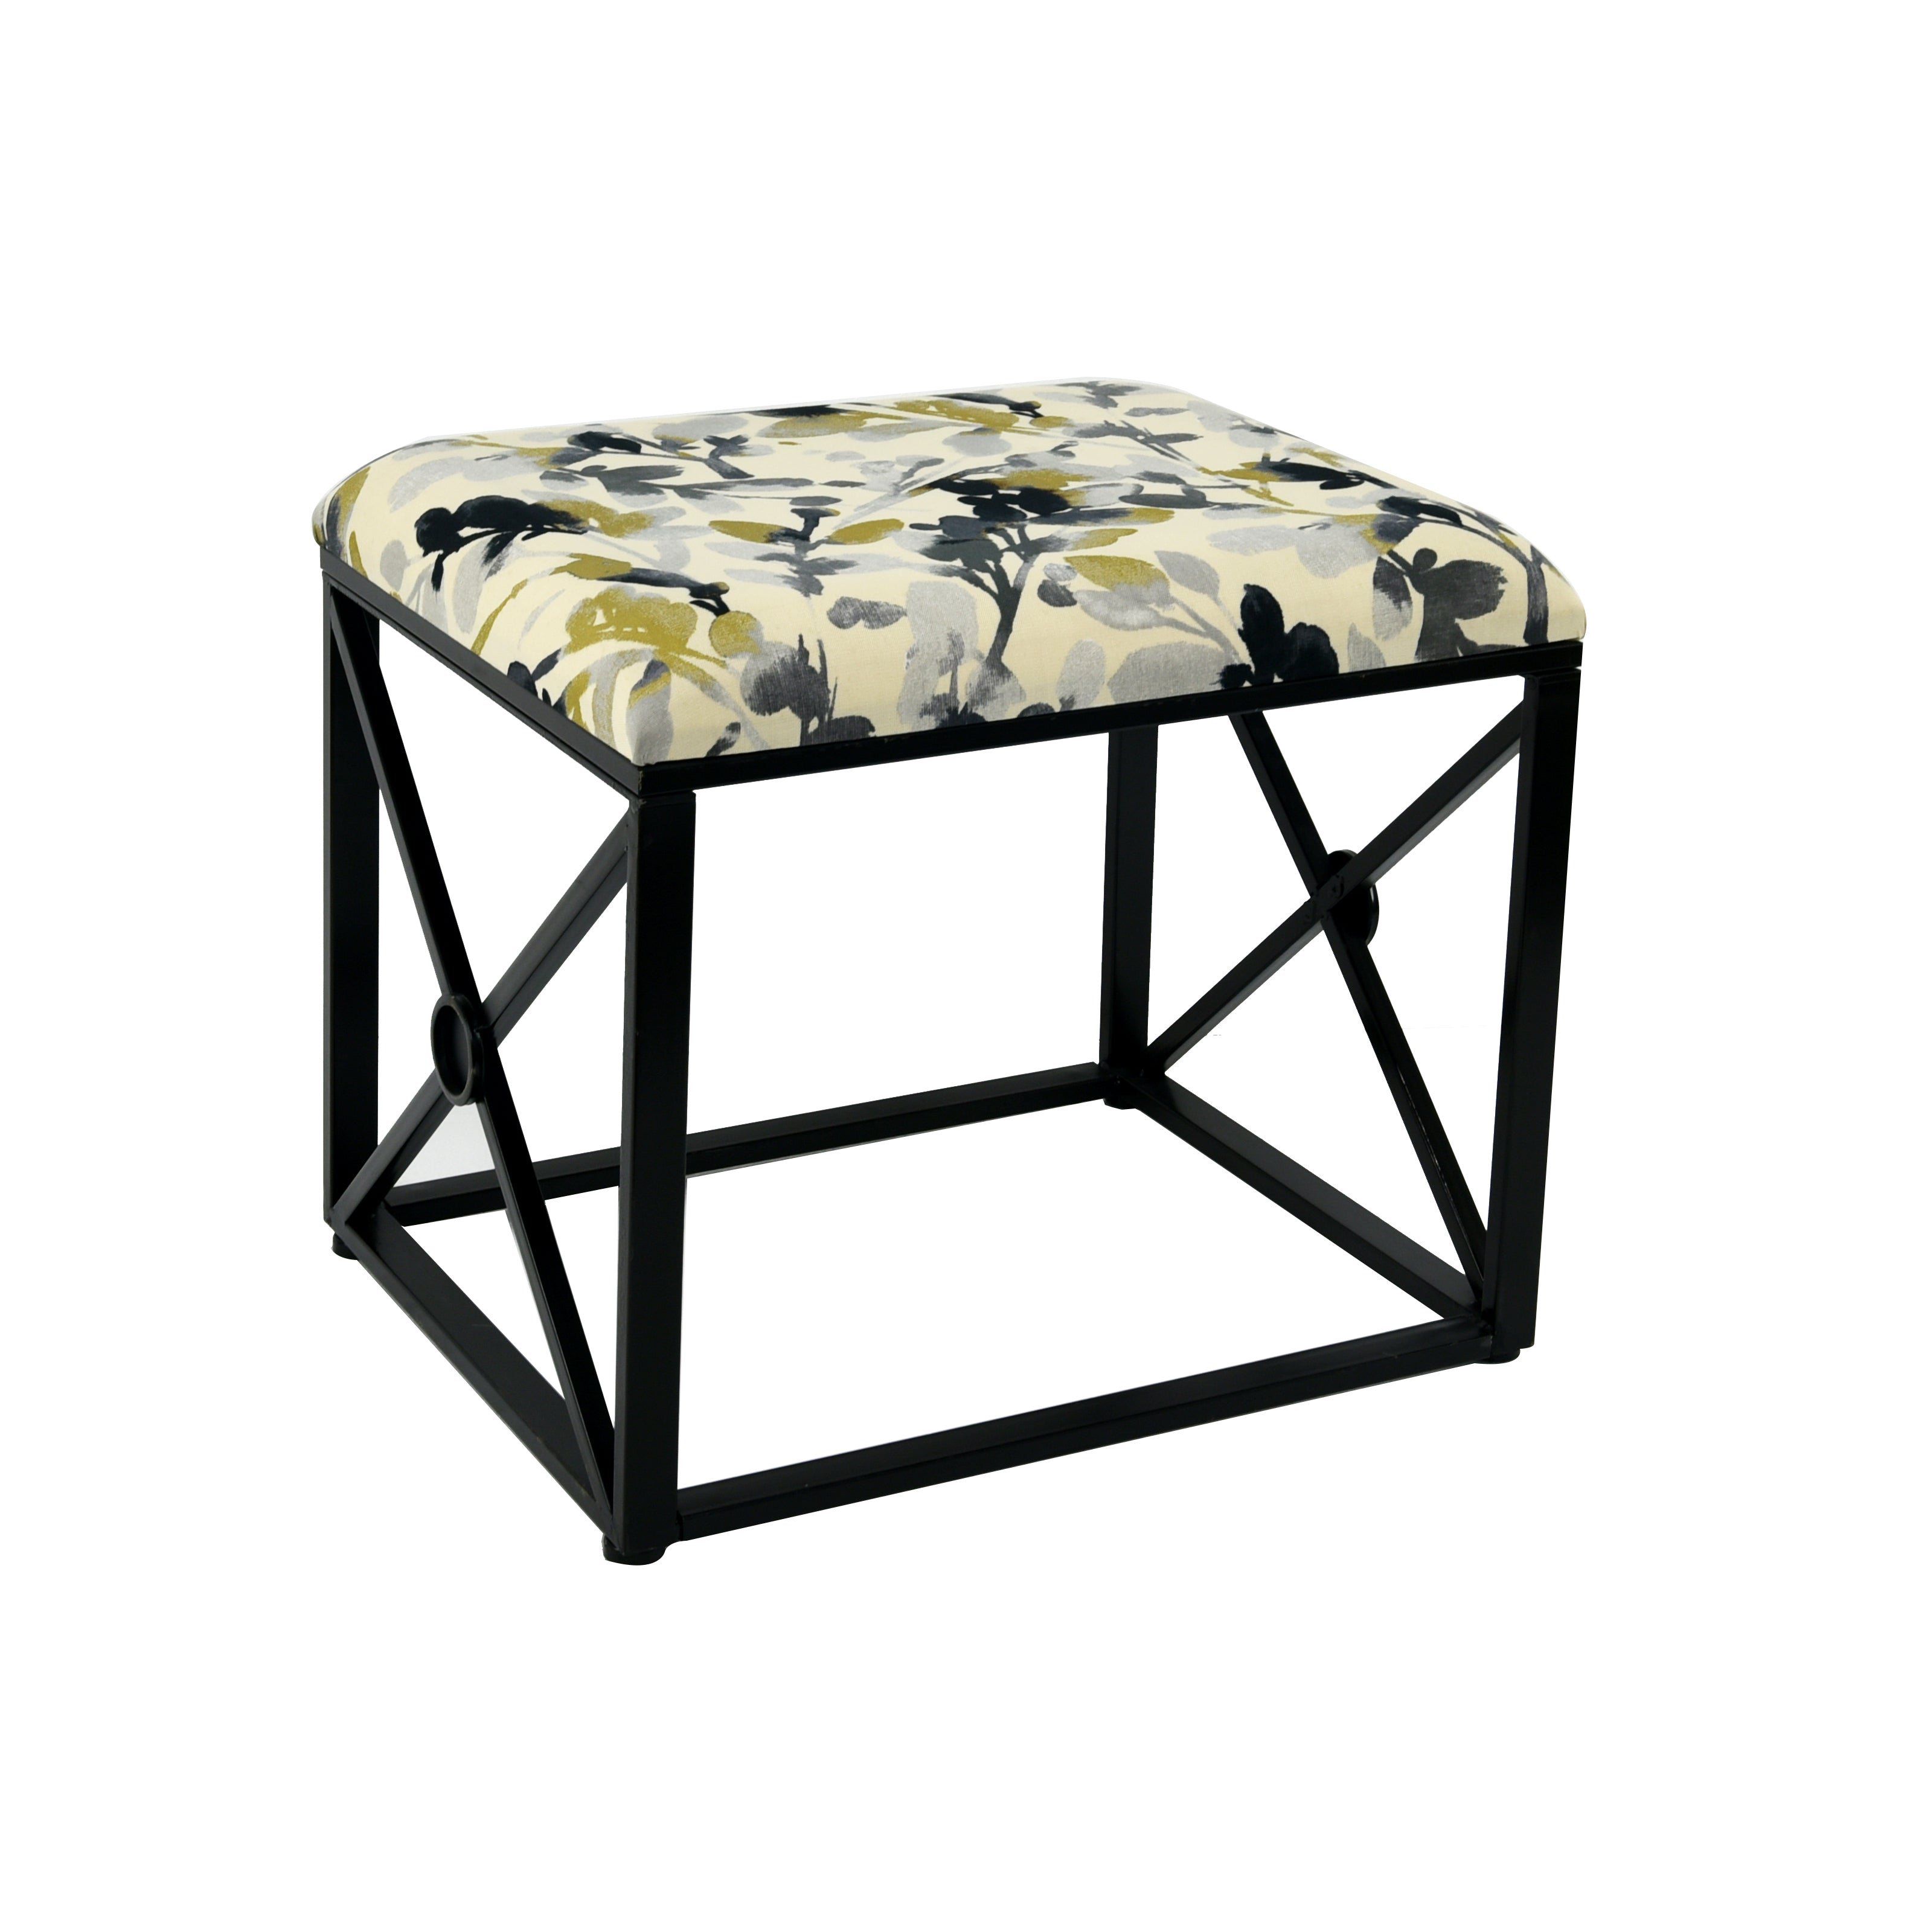 Vanderbilt Metal and Fabric Cushioned Ottoman, 19 1/2-inch Tall